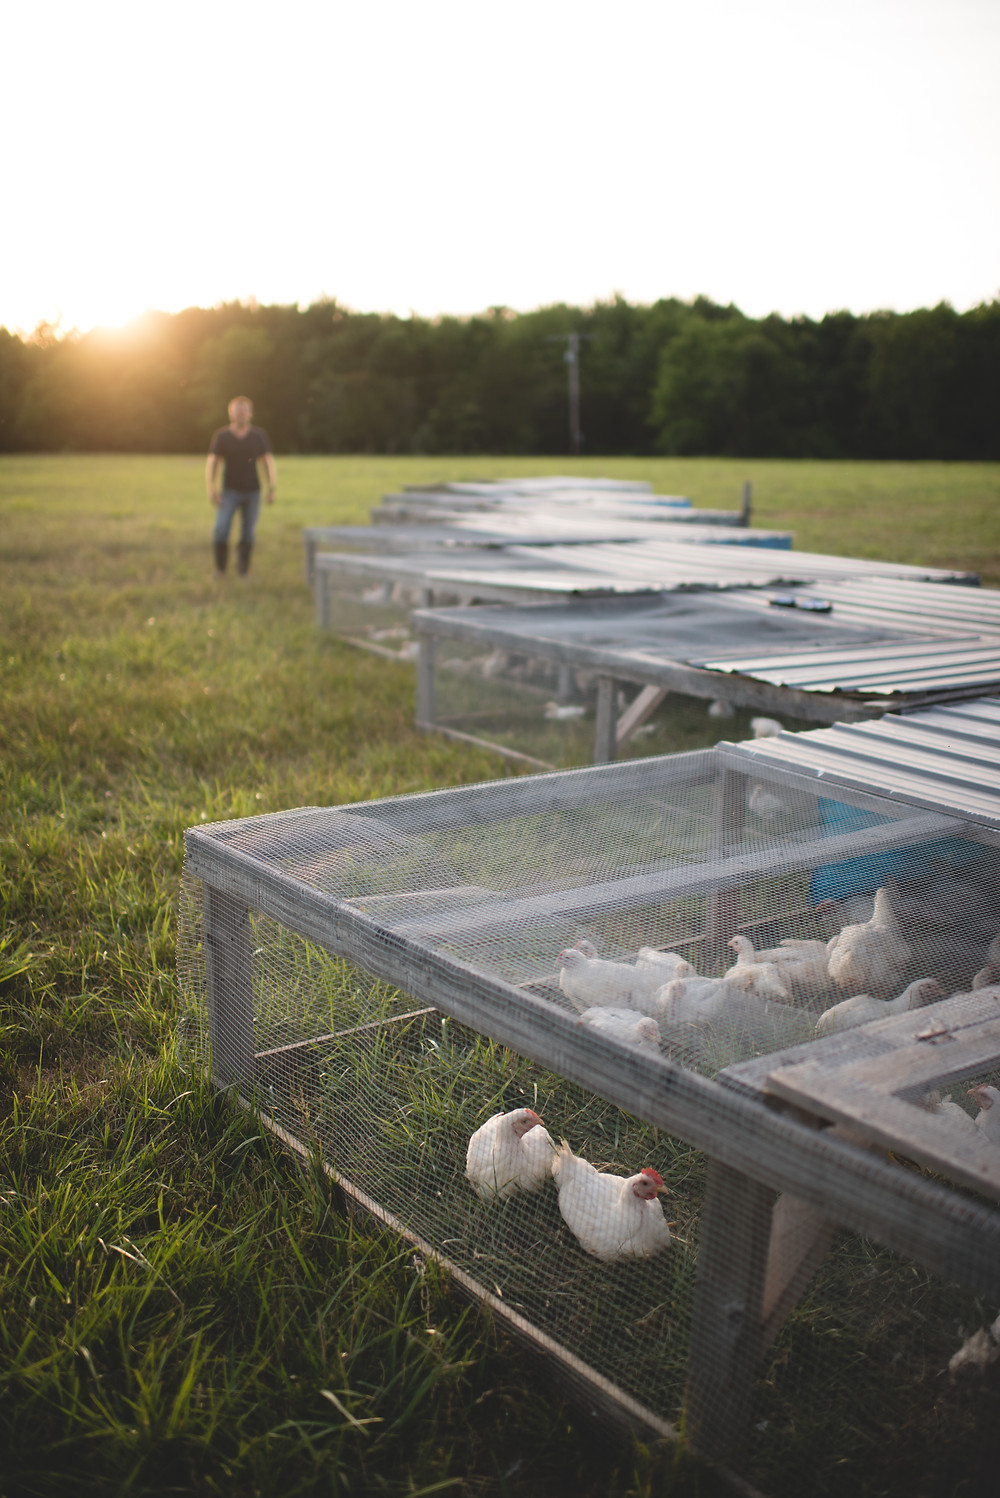 How we used to raise our pastured chickens when we first started the farm